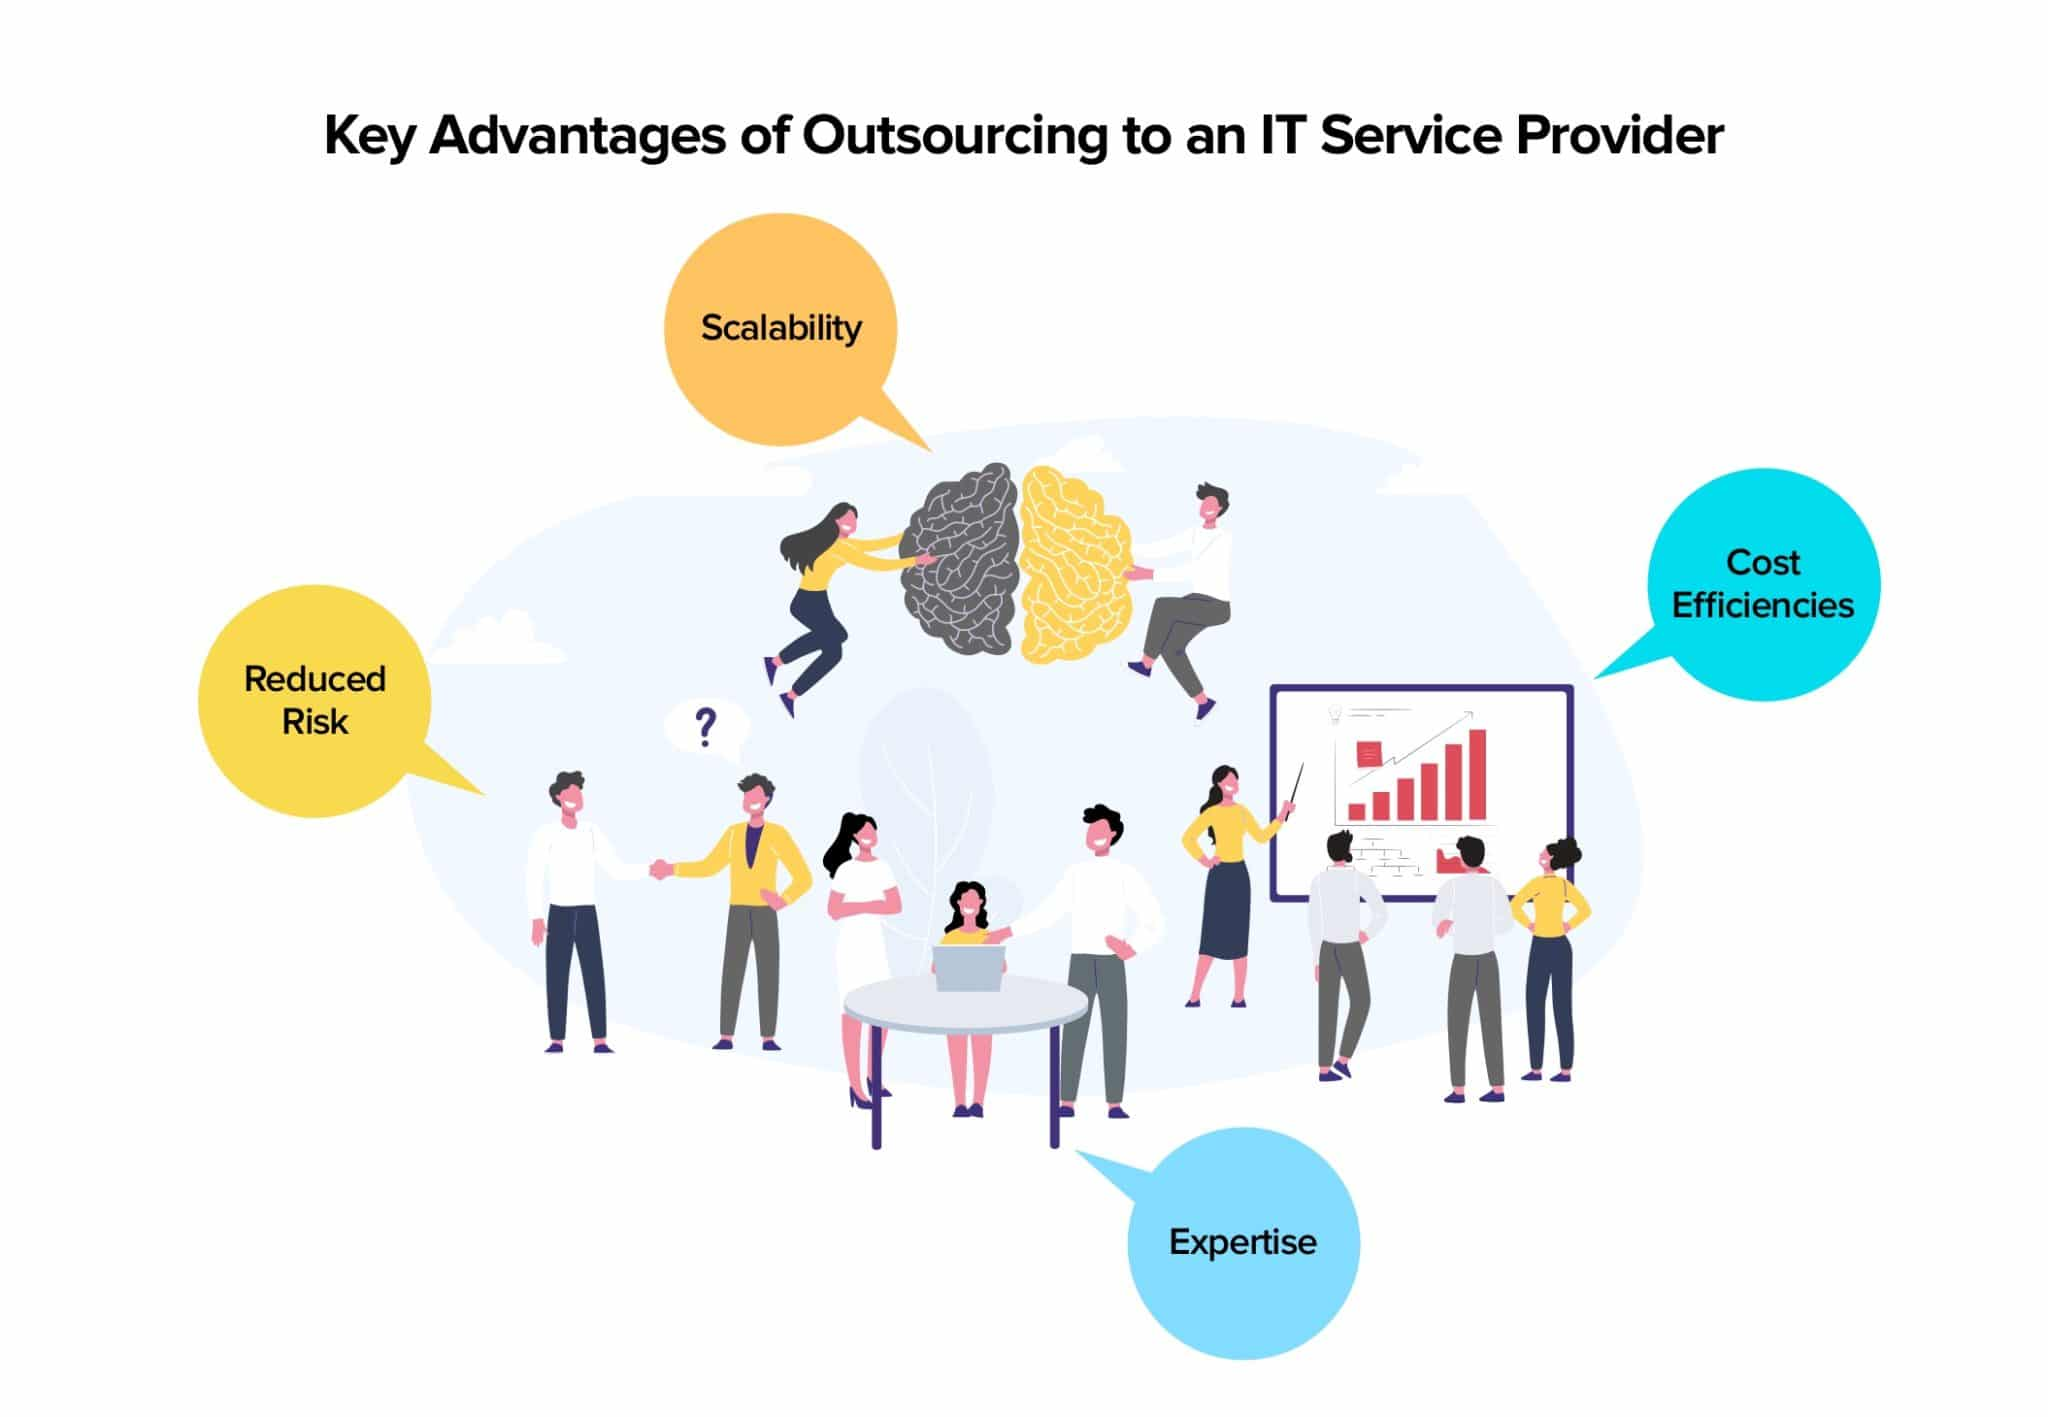 Key Advantages of Outsourcing to an IT Service Provider